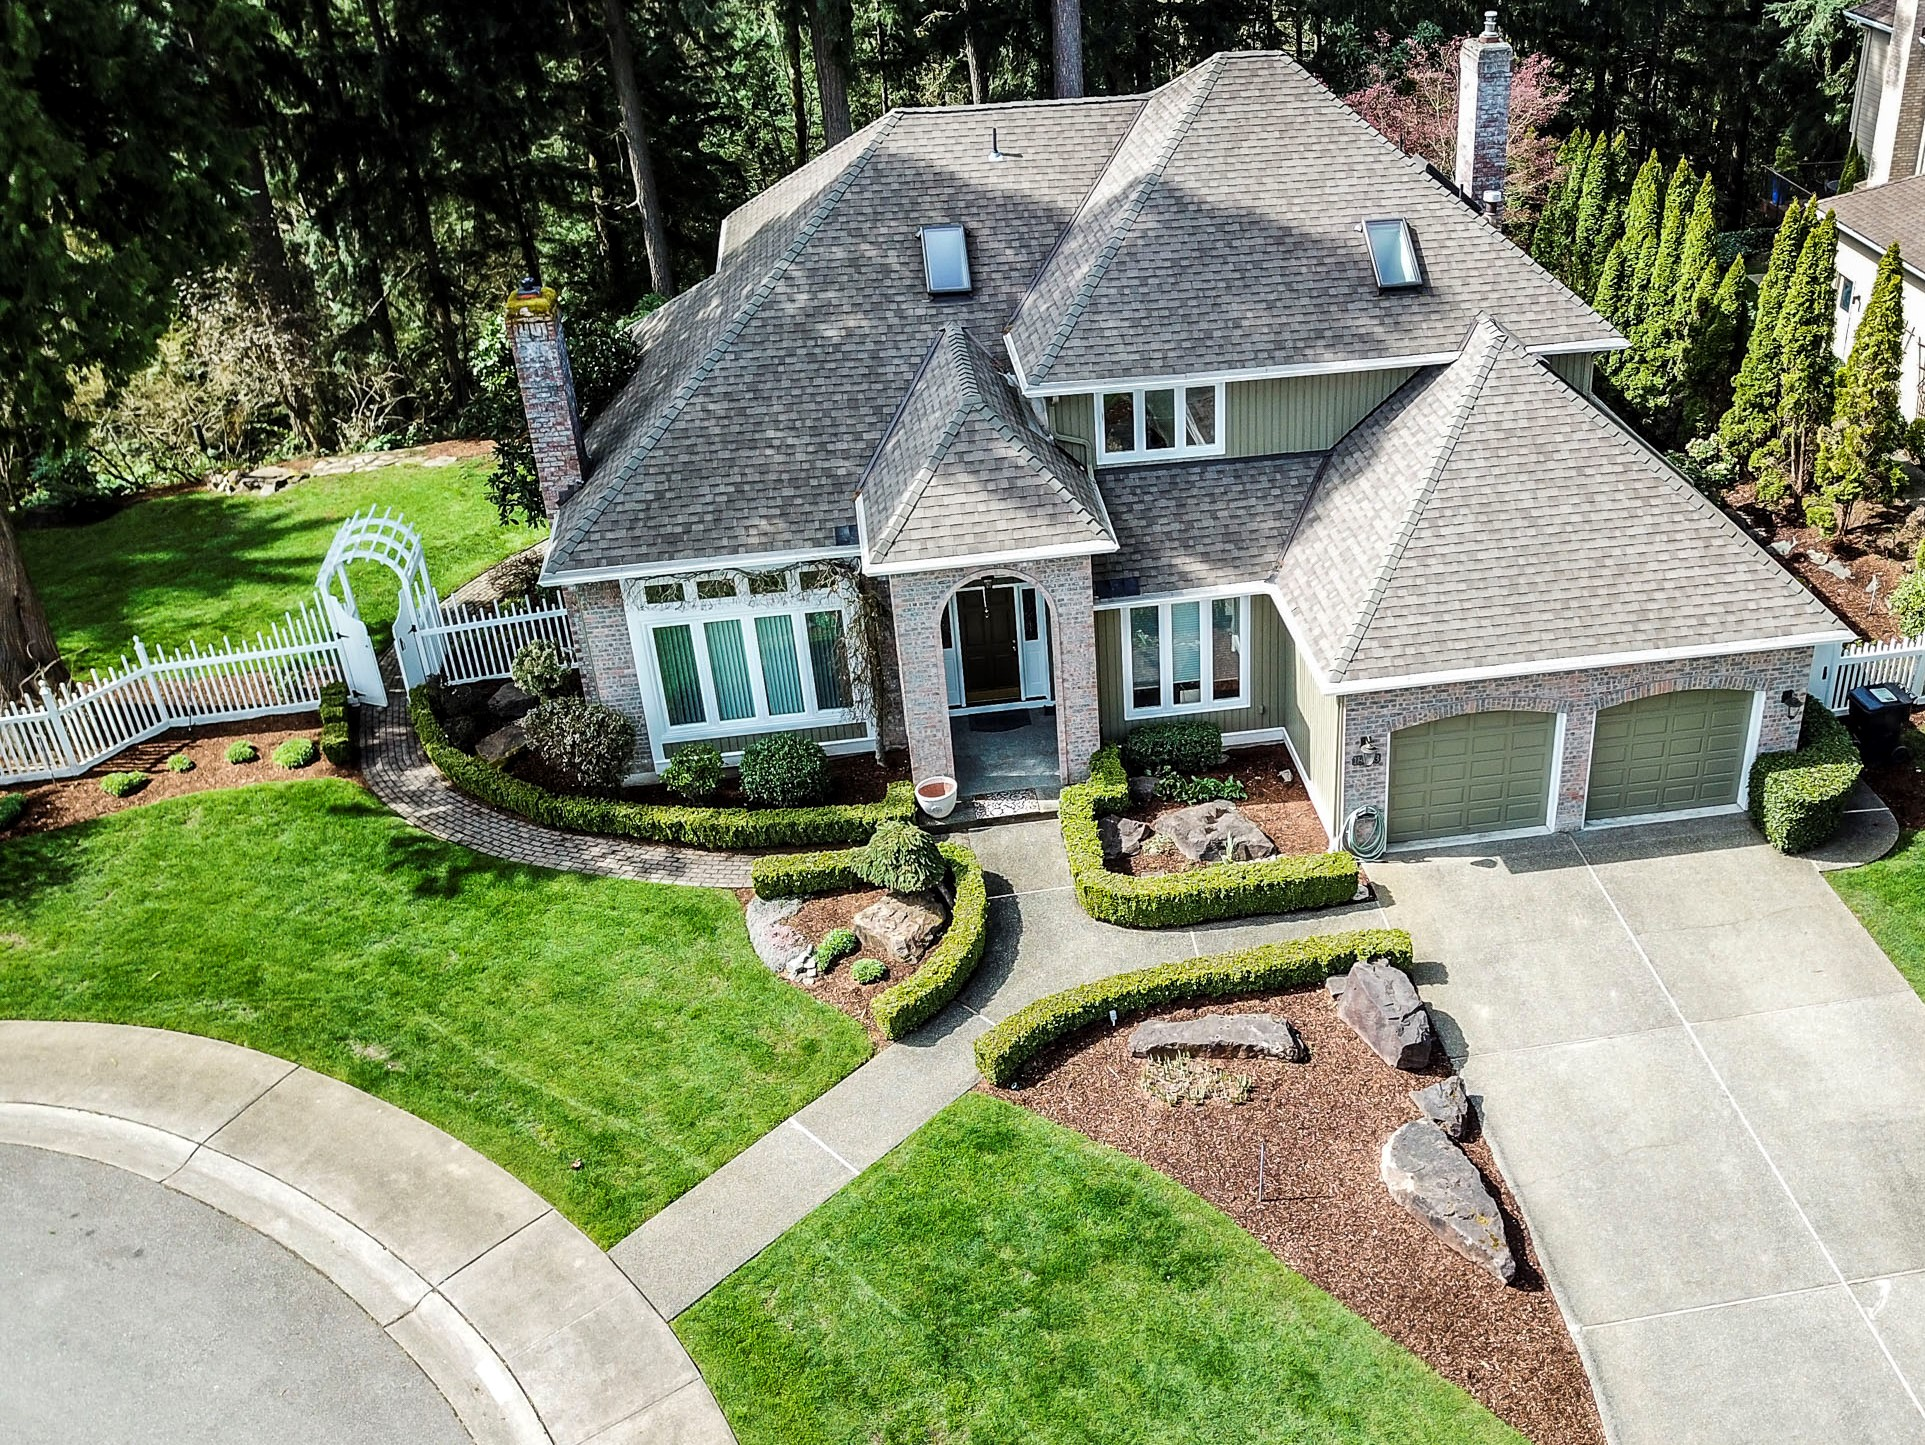 house front aerial-straight on.jpg